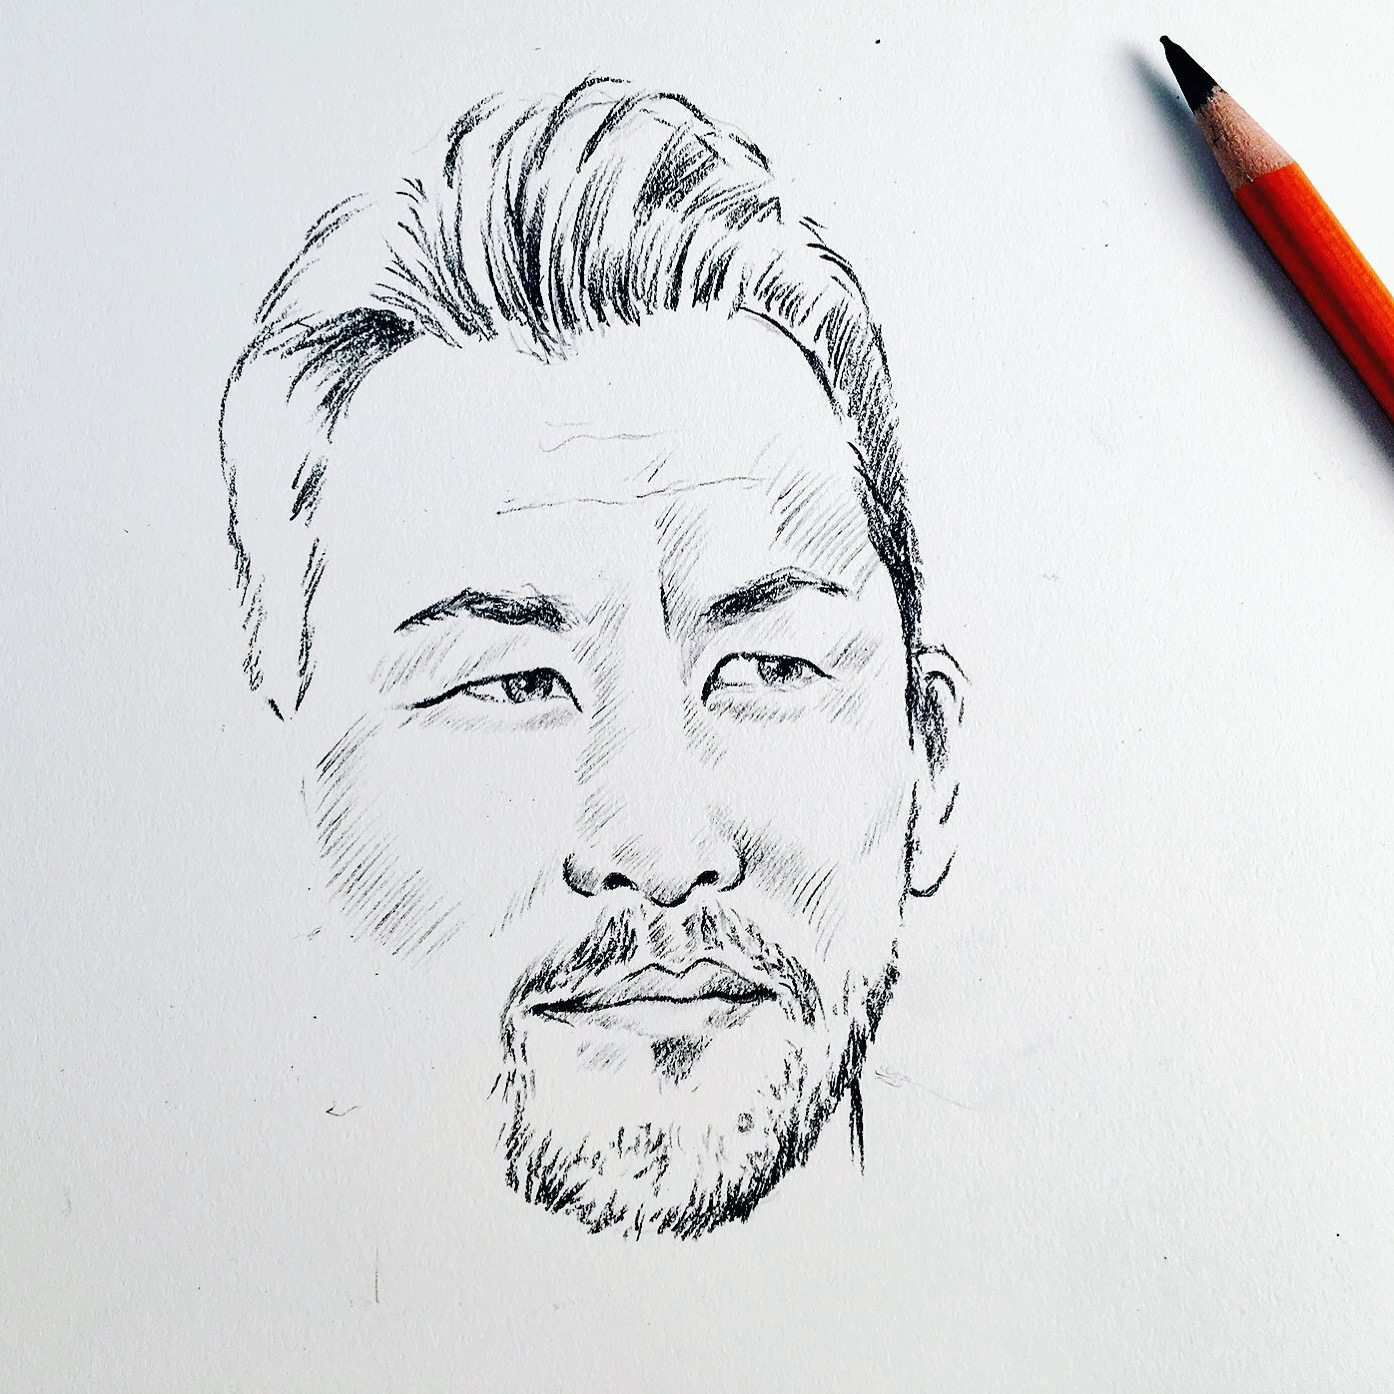 FootballAtlas_Sketch-4.jpg